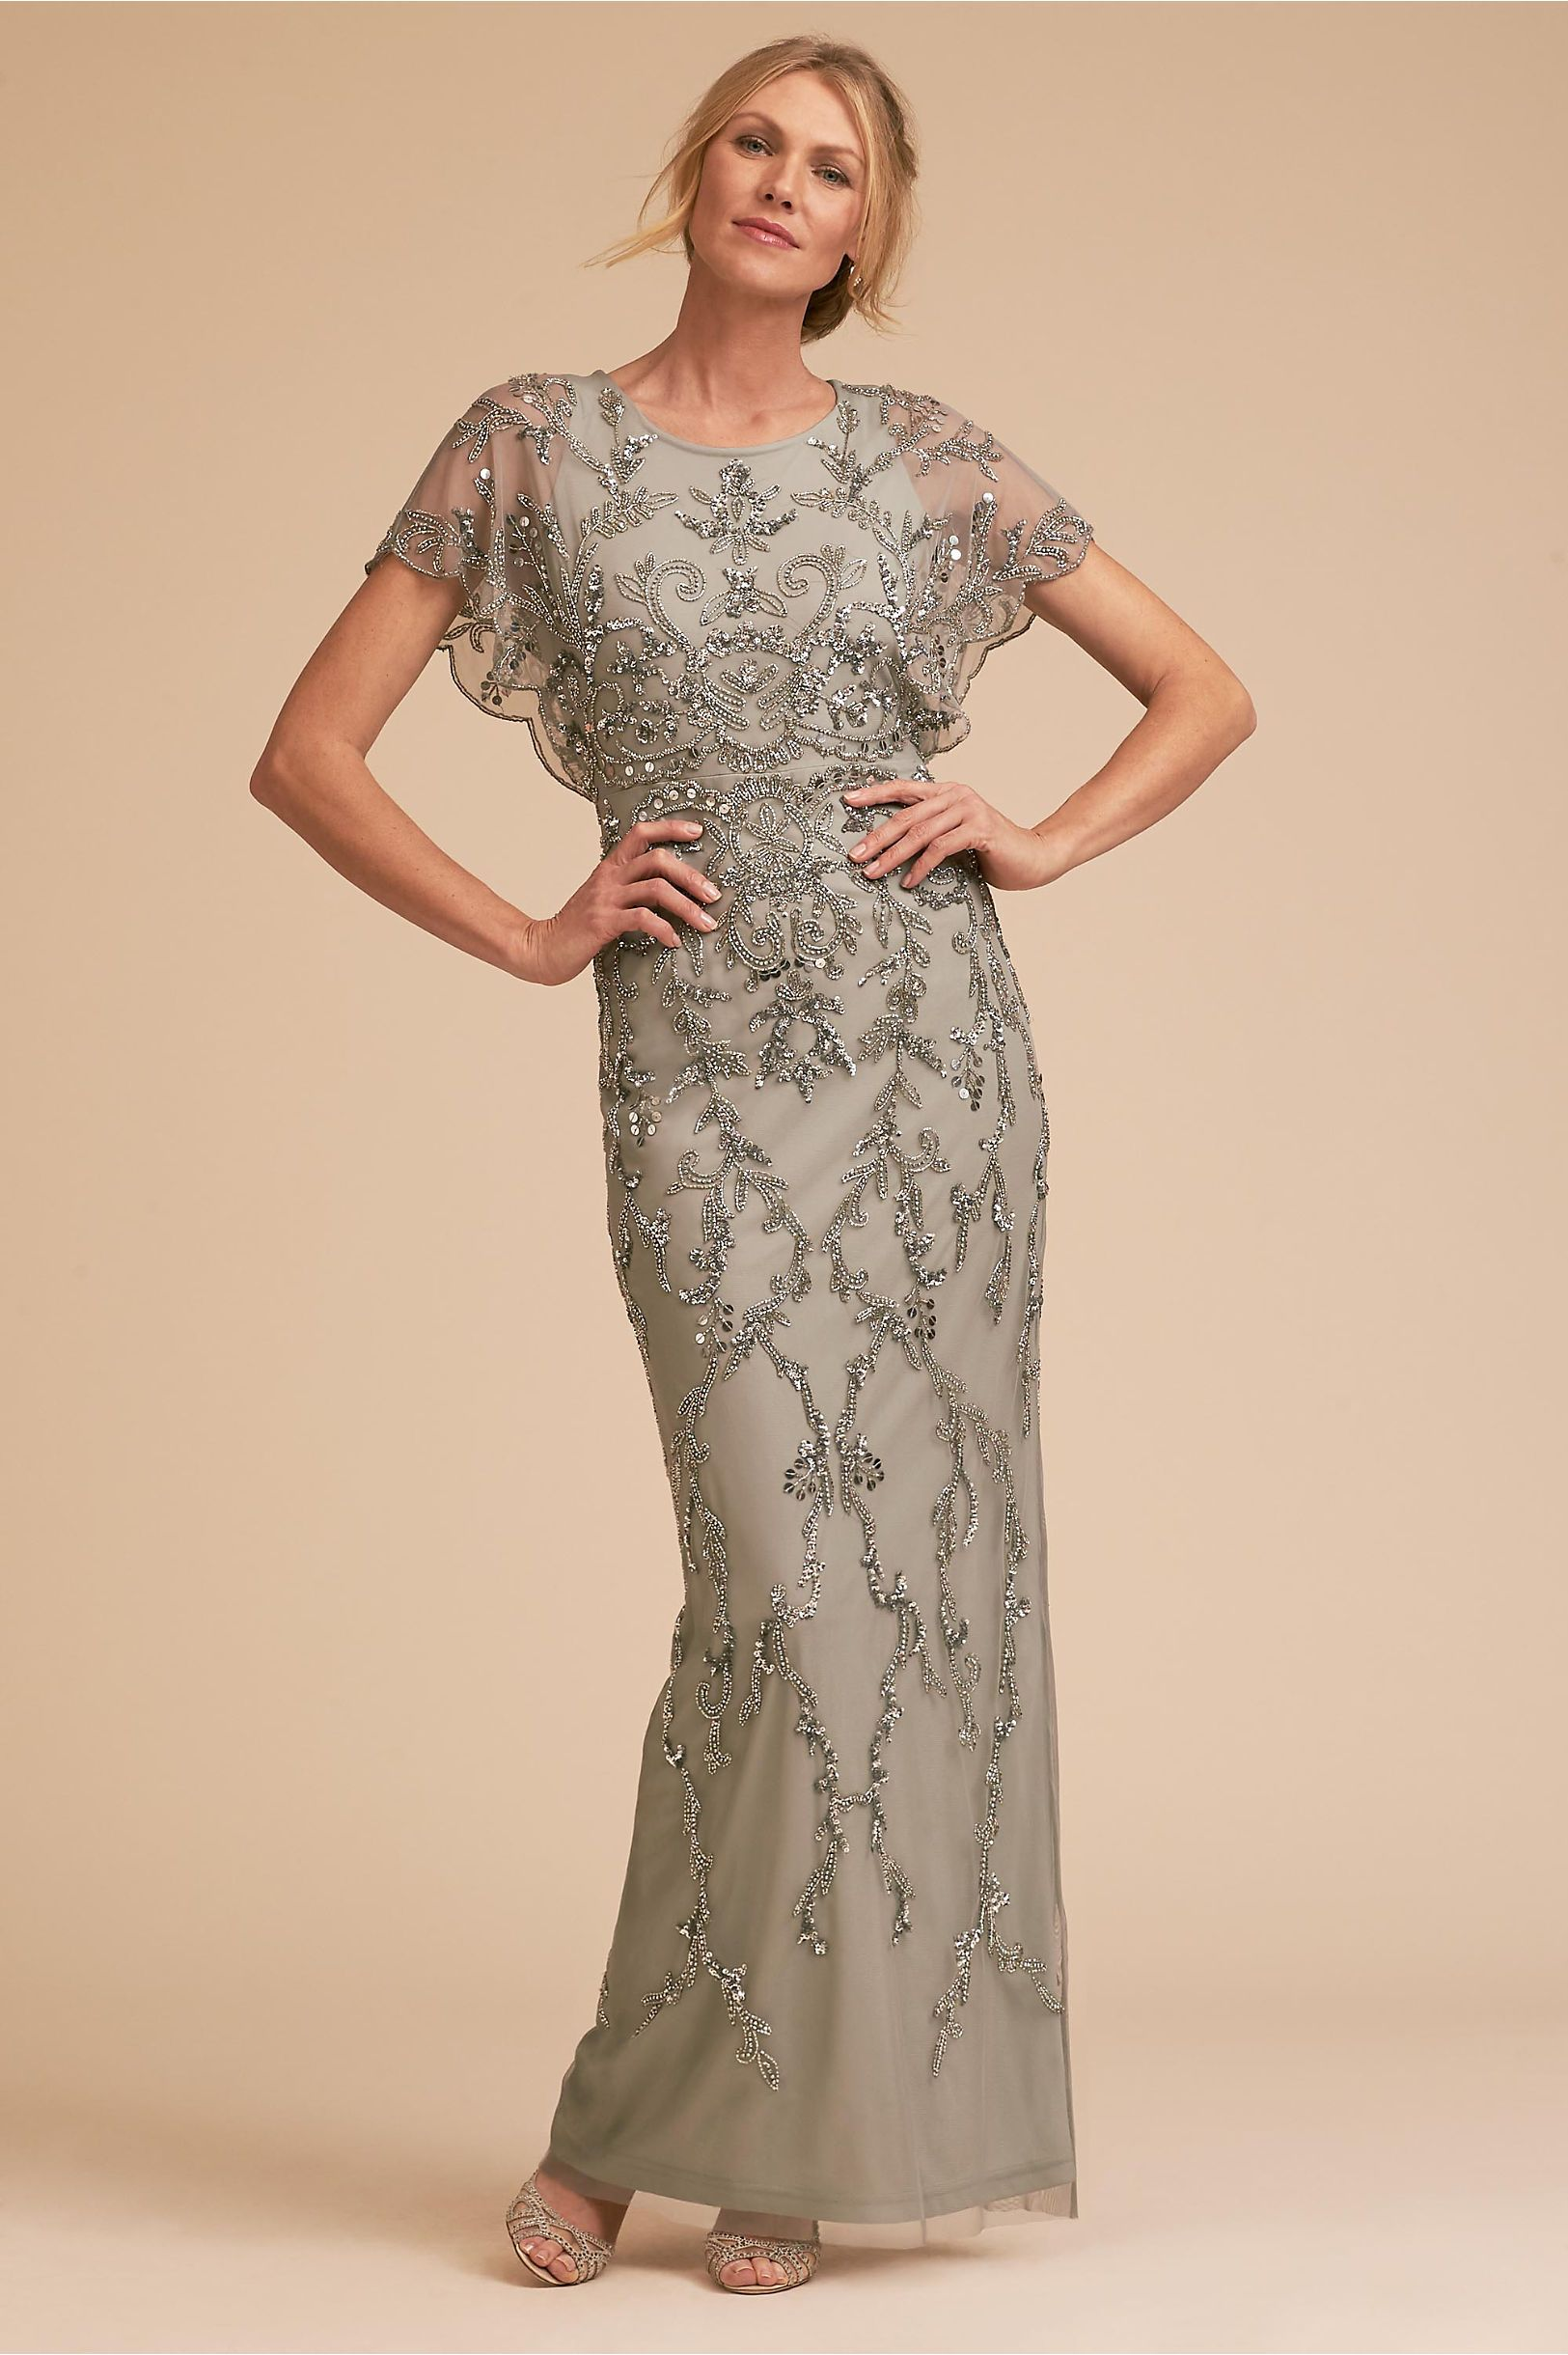 6dec21ac BHLDN's Adrianna Papell Riesling Dress in Blue Mist | Products ...